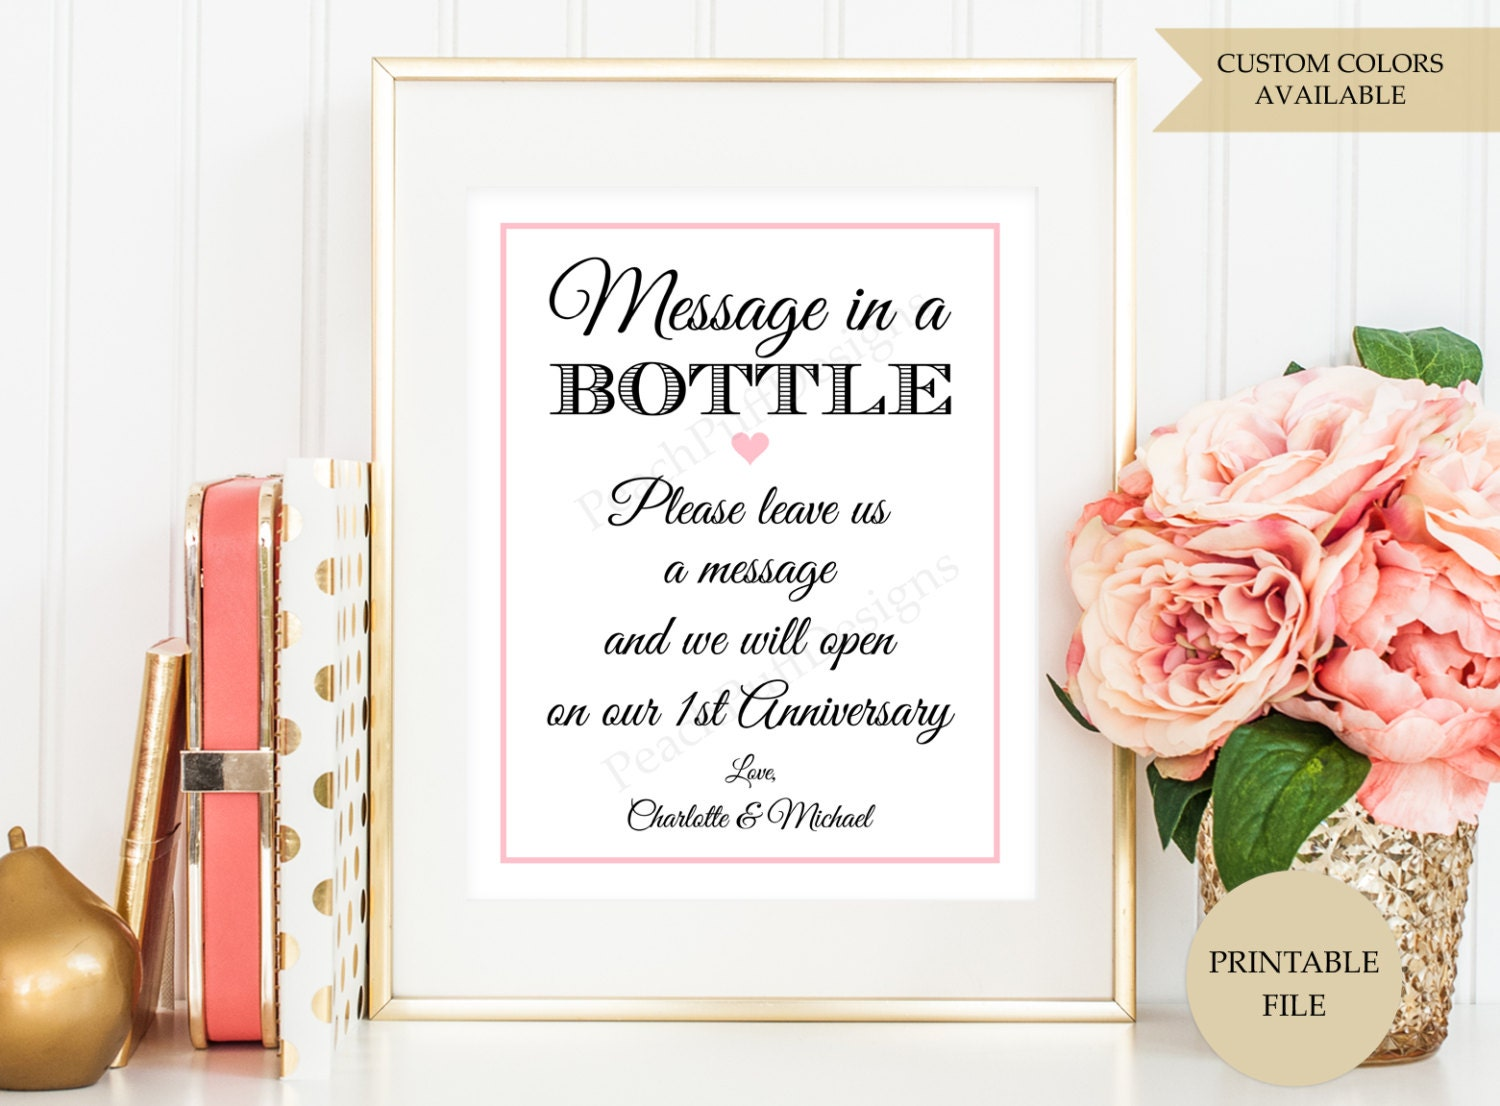 Message in a bottle – Message in a Bottle Party Invitations